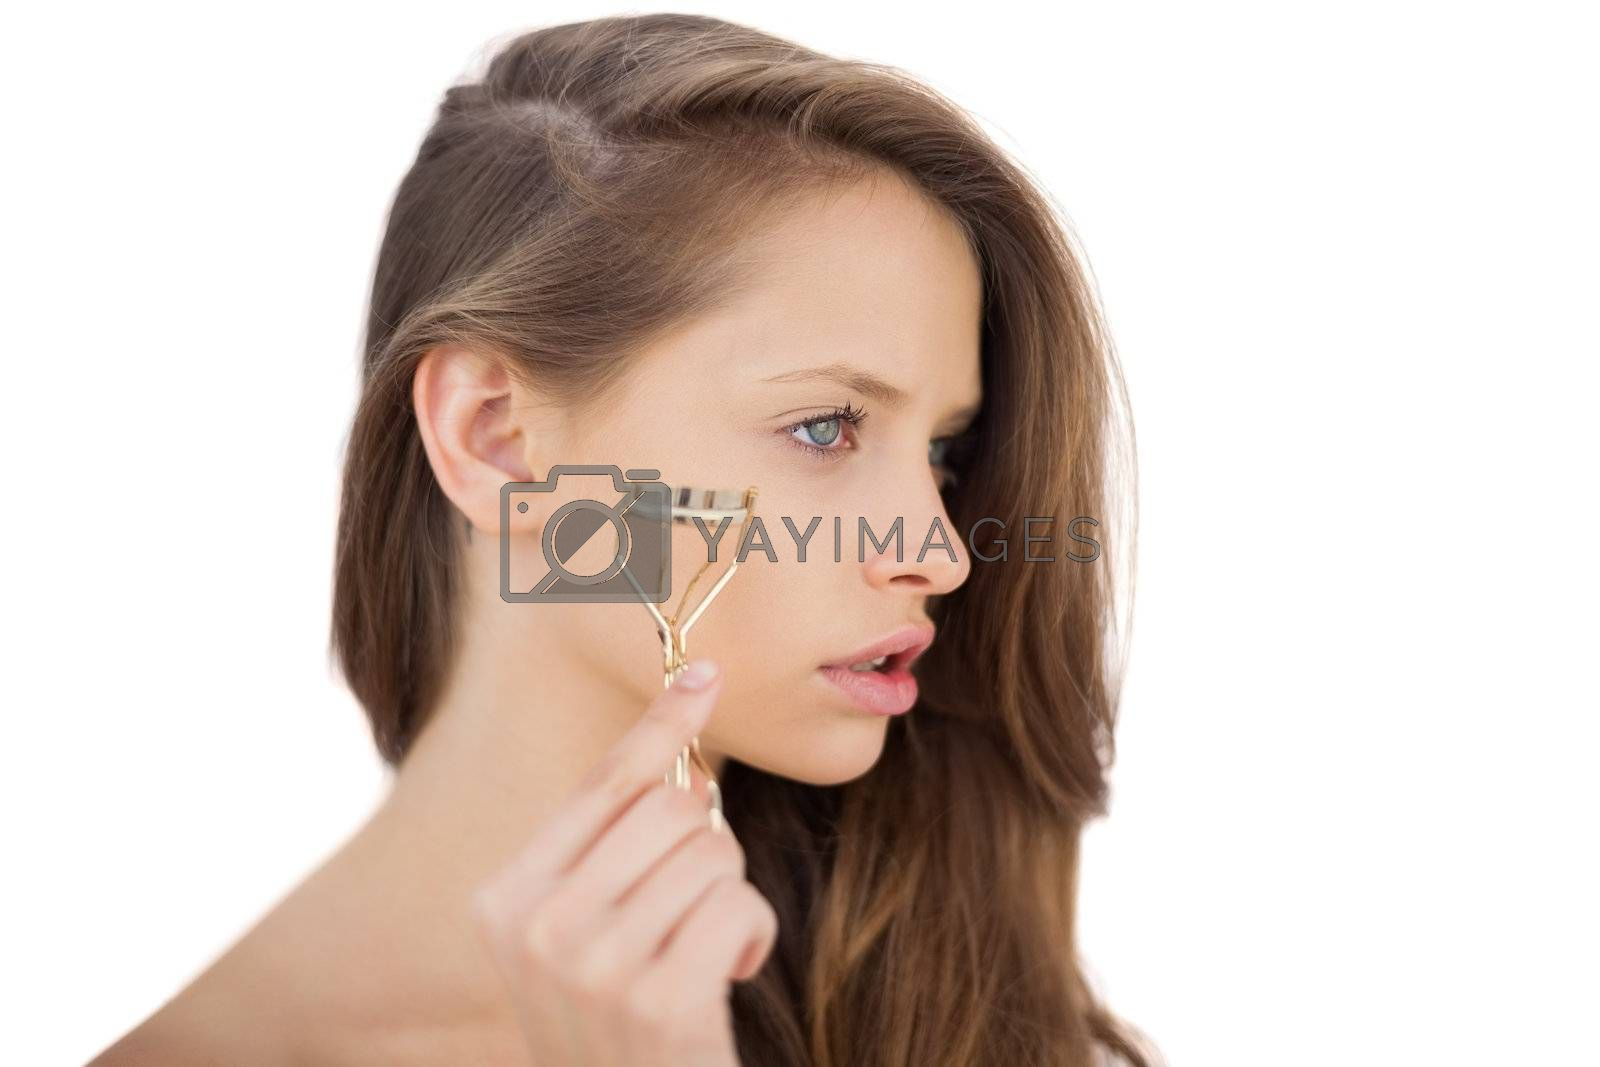 Unsmiling brunette model holding an eyelash curler by Wavebreakmedia